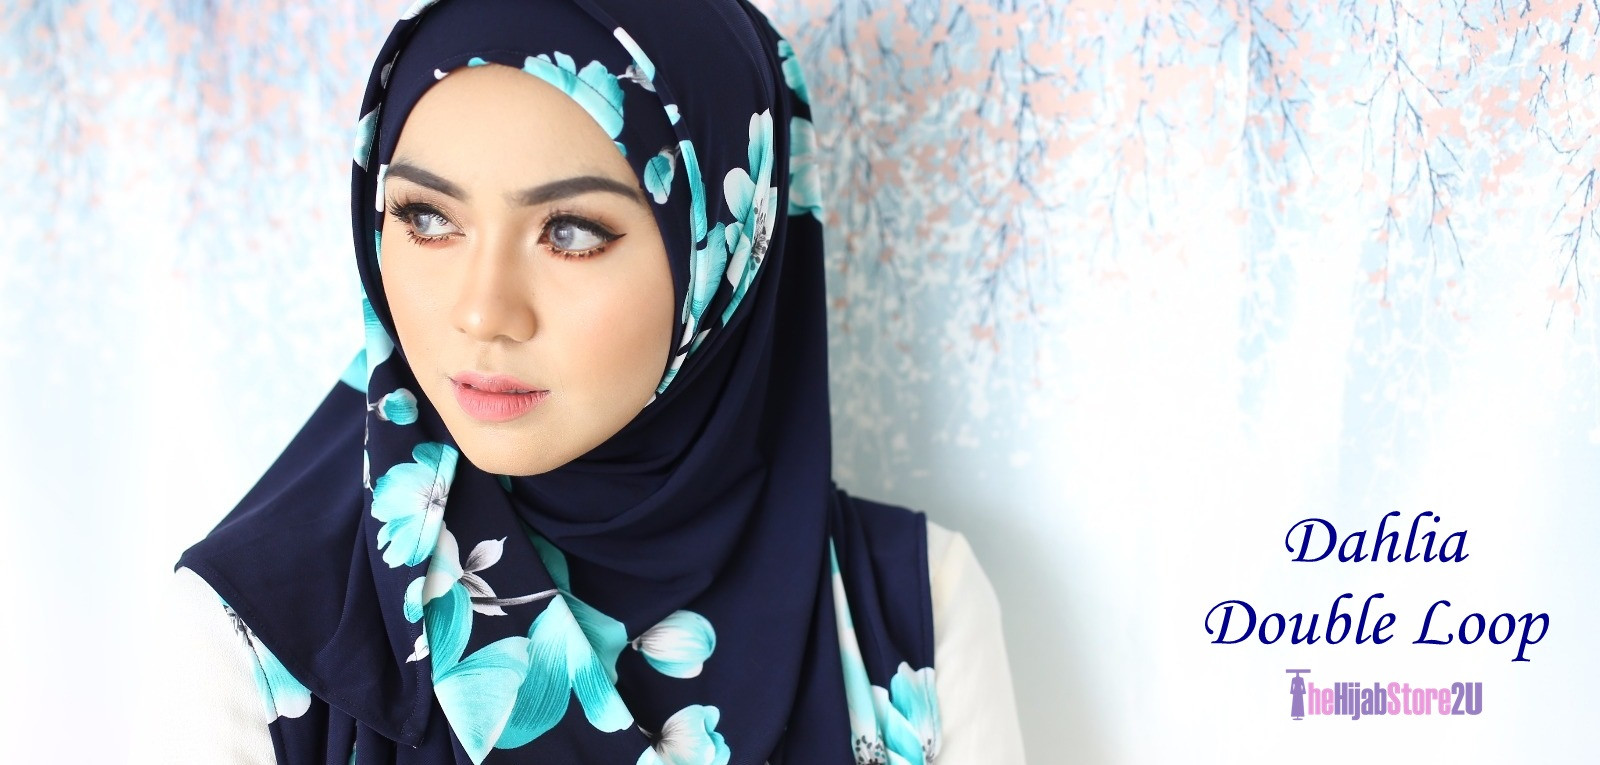 Dahlia Double Loop Shawl Lycra